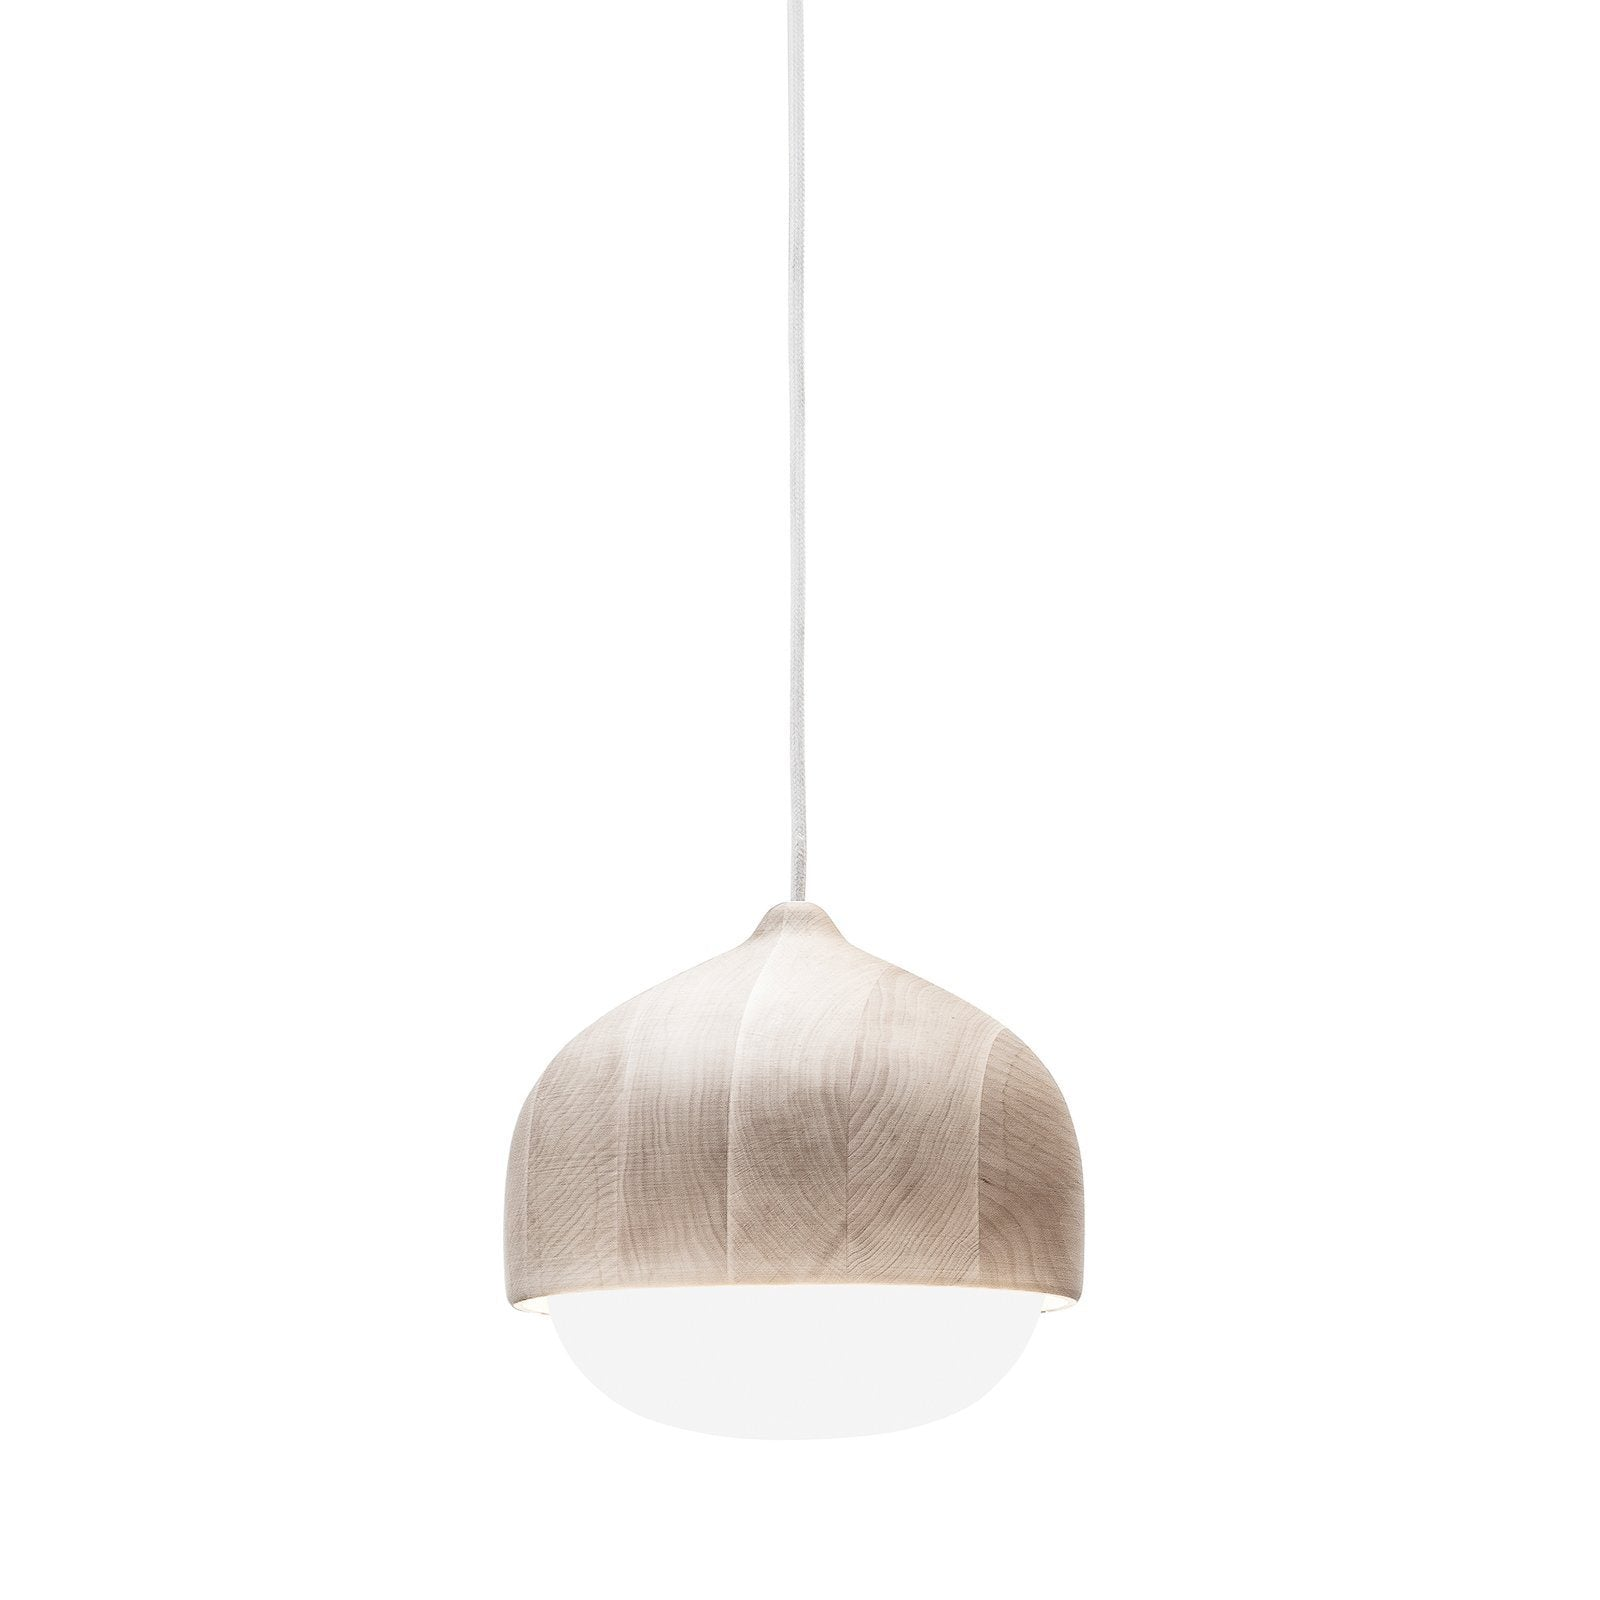 lights ceiling lamp art lighting products gb pendant vintergata ikea en